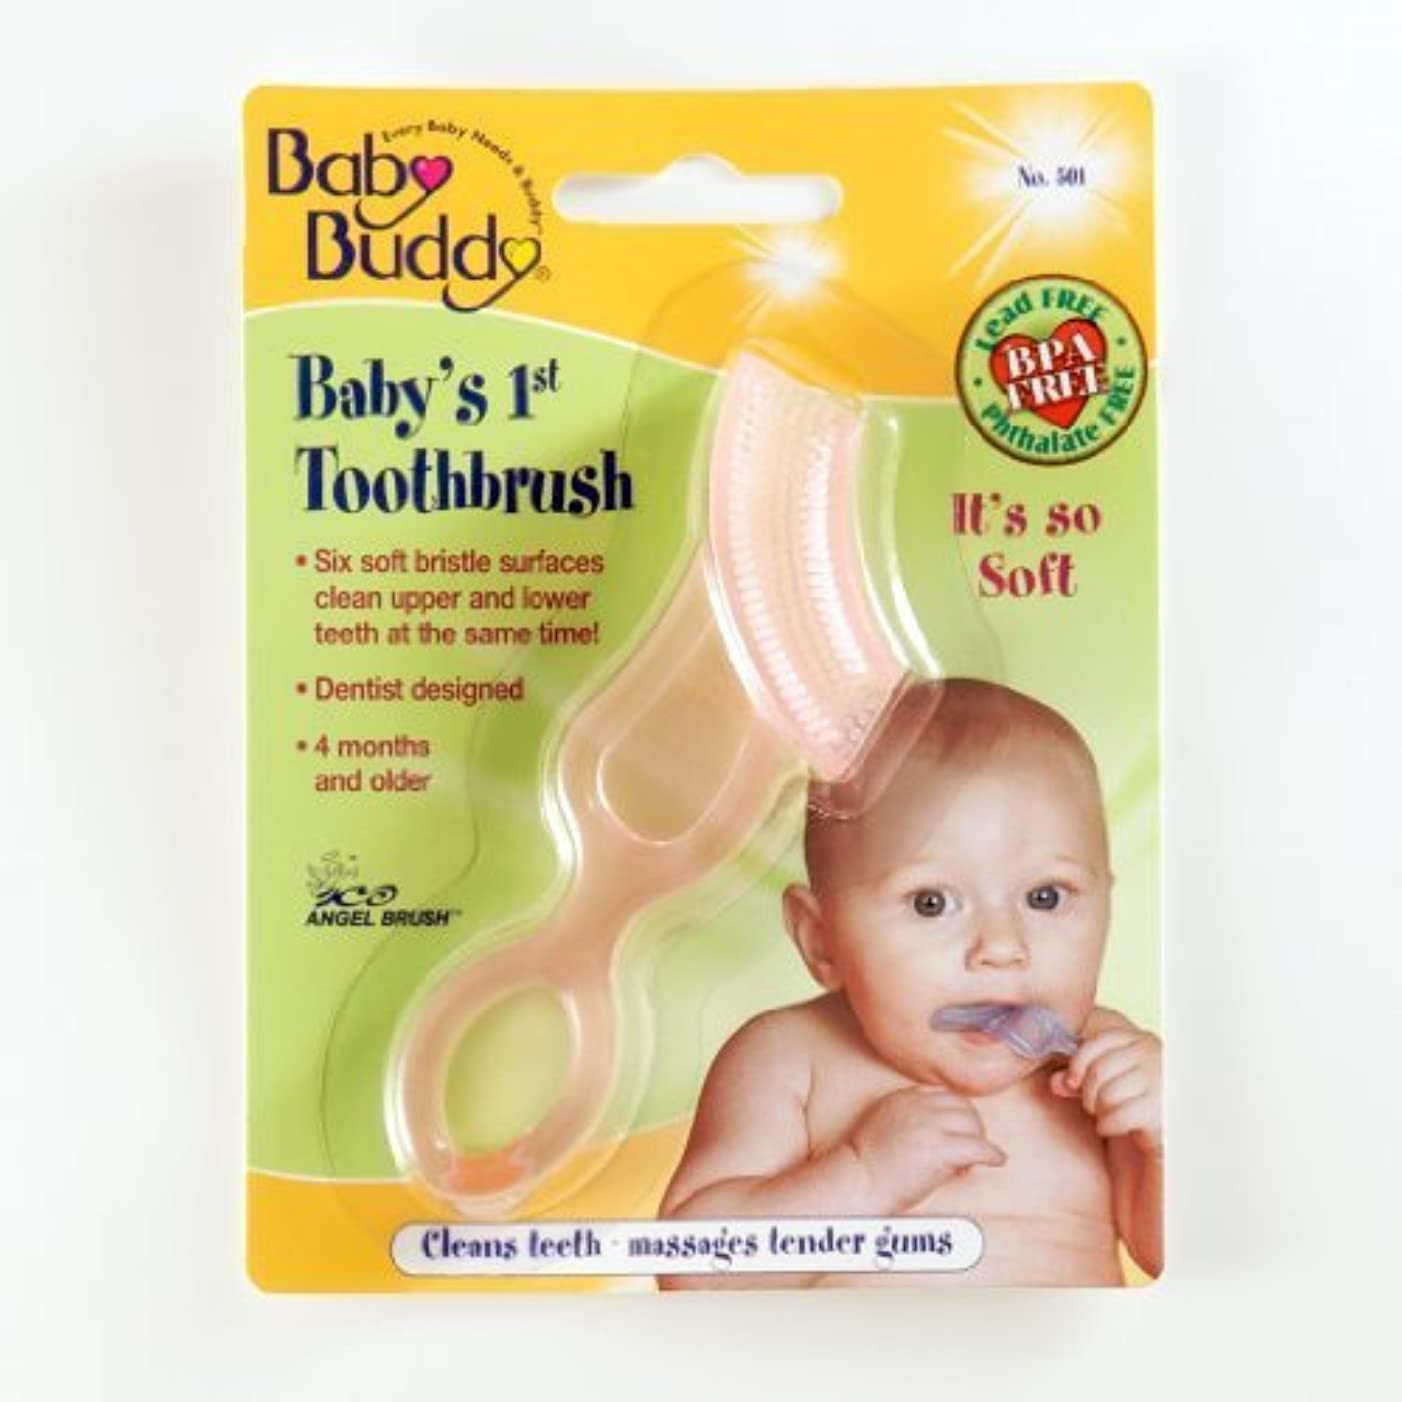 不良品ずらす分Baby Buddy: Baby's 1st Toothbrush by Baby Buddy [並行輸入品]